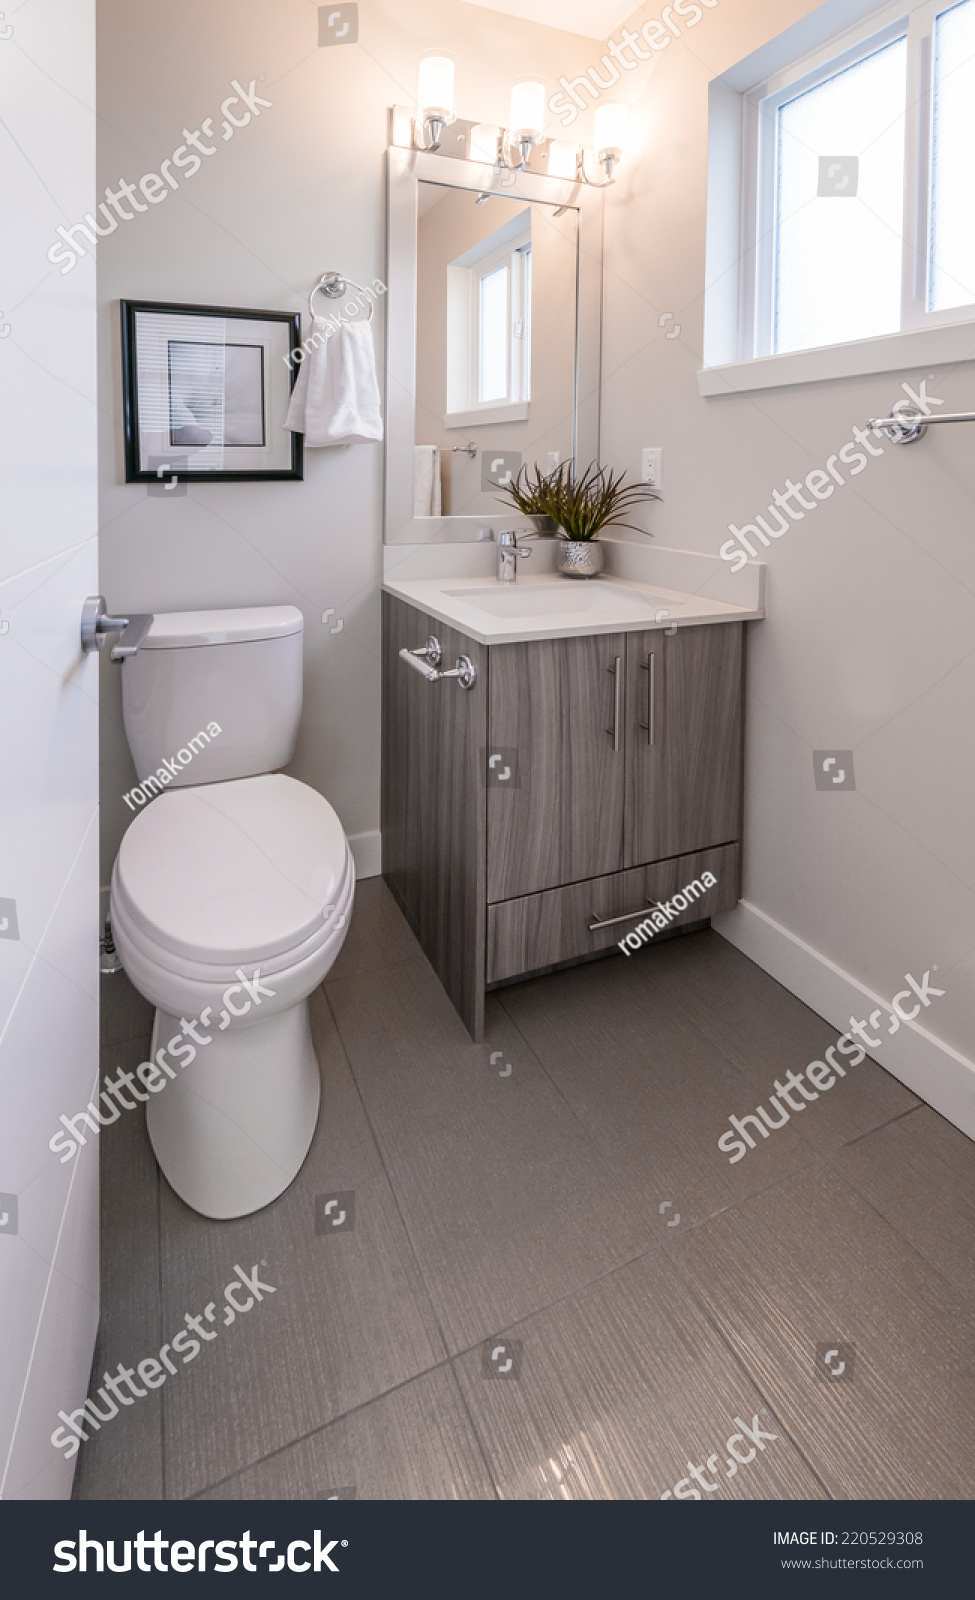 Nicely Decorated Modern Washroom Bathroom With The Toilet Sit Sink Some Plants